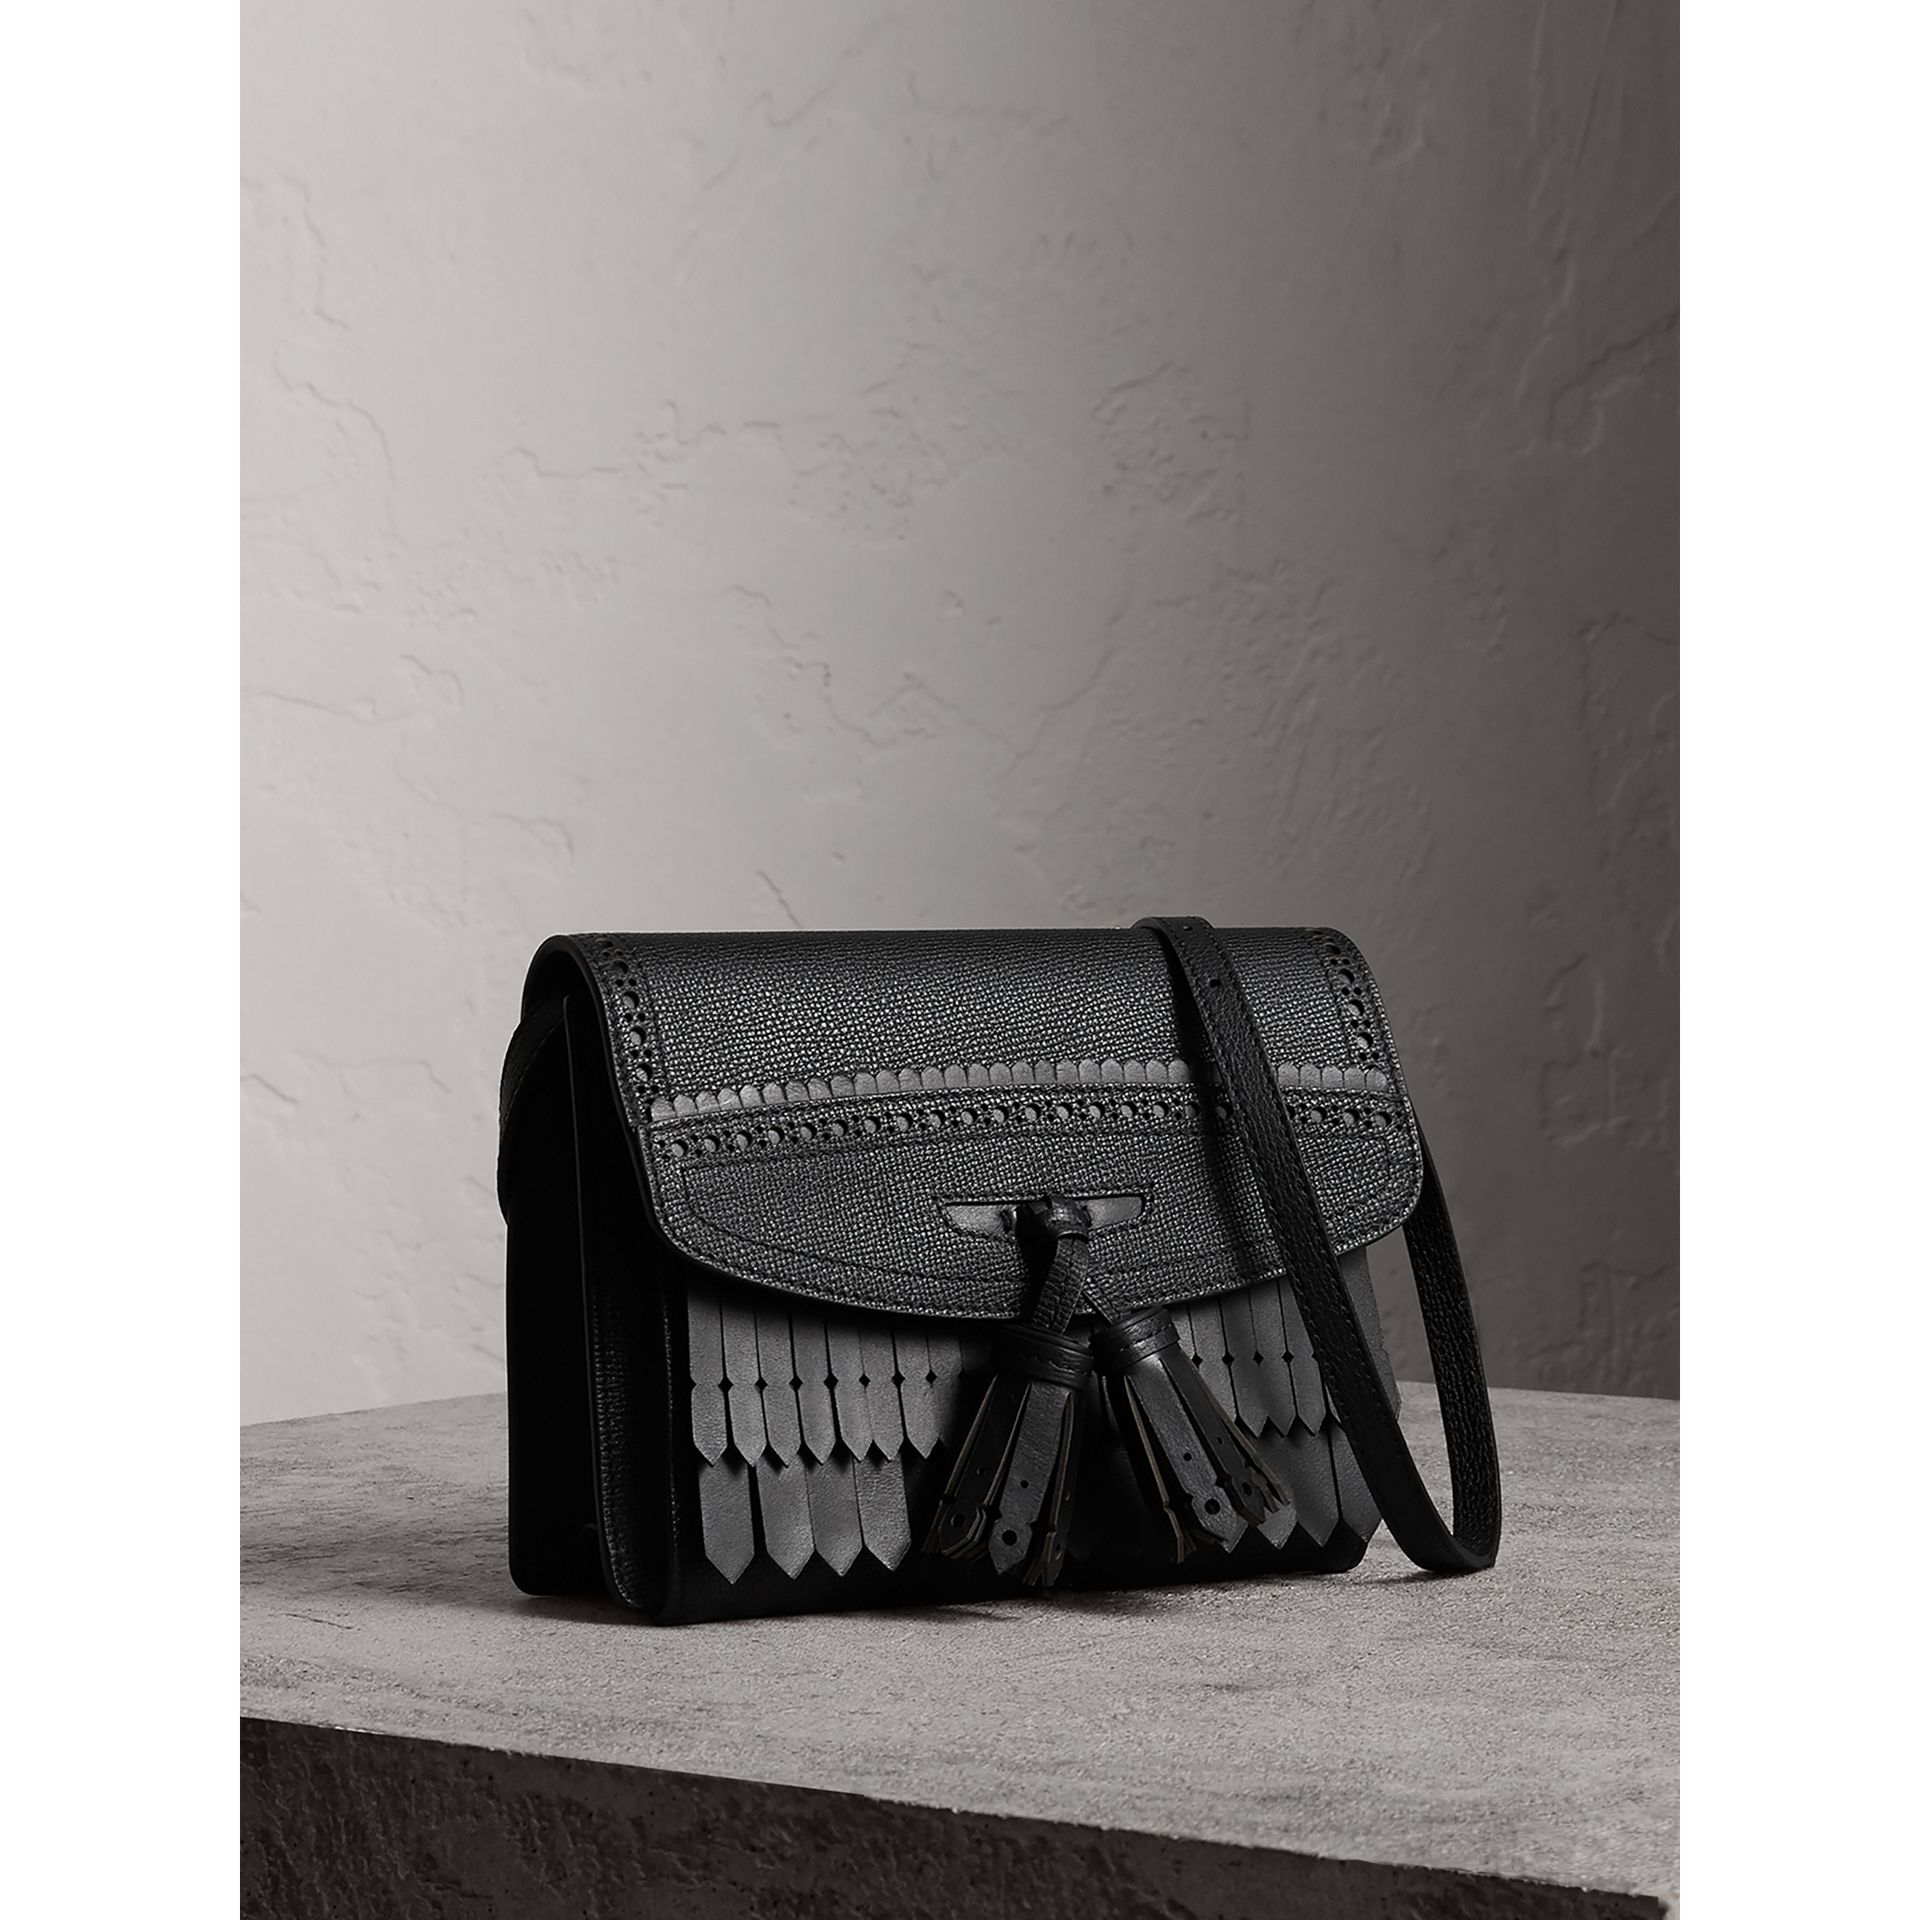 Brogue and Fringe Detail Leather Crossbody Bag in Black - Women | Burberry - gallery image 5